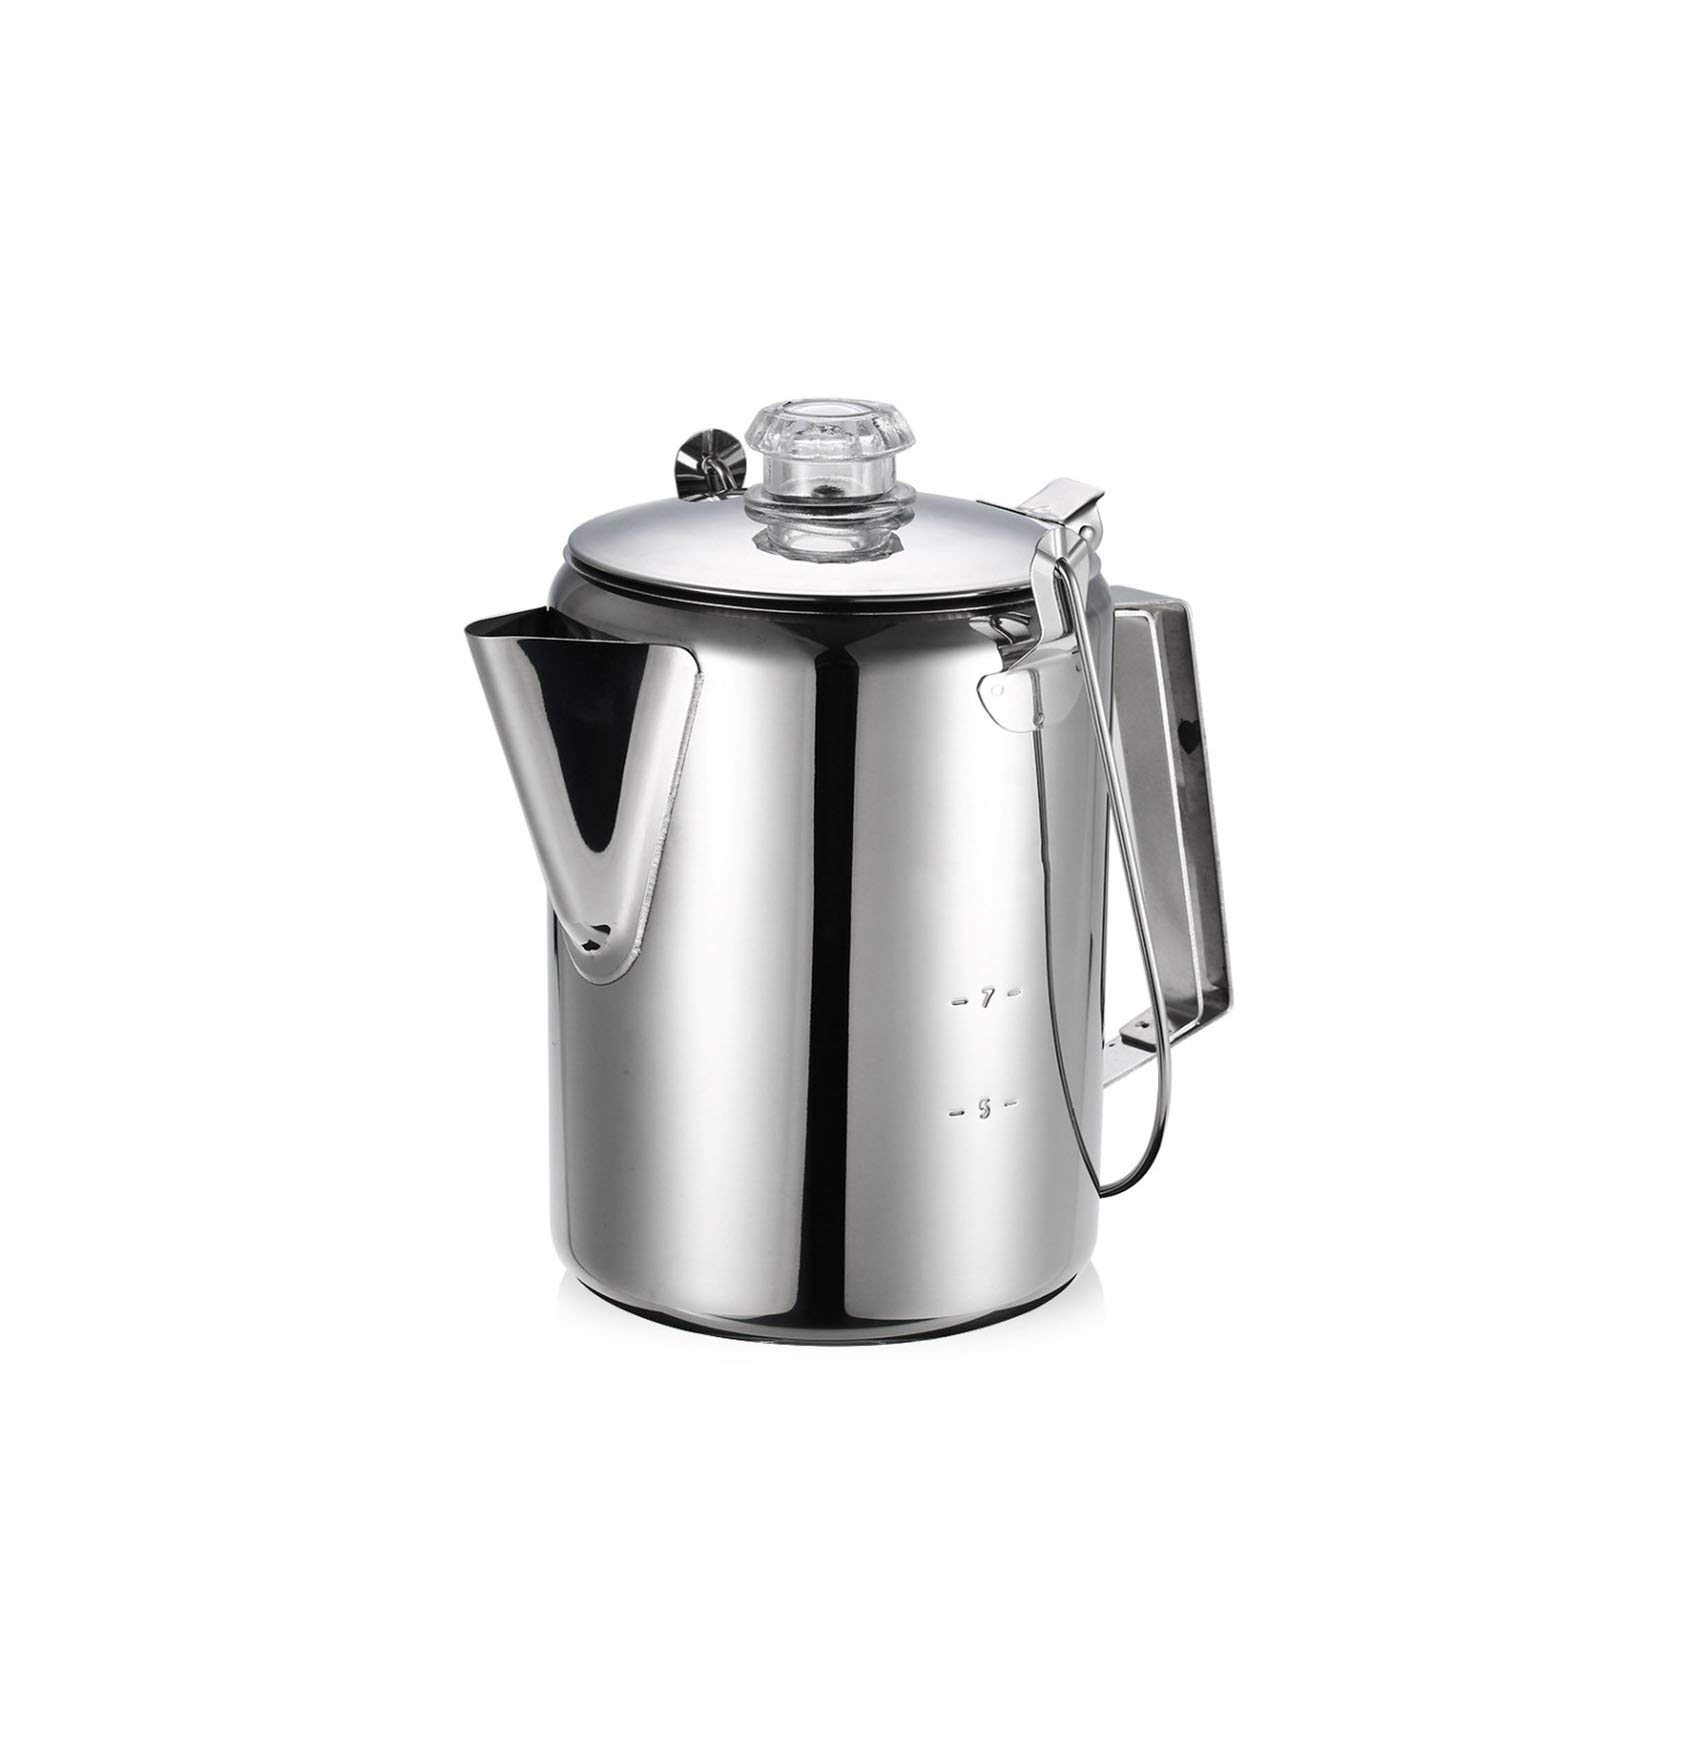 Coffee-Percolators Outdoor Camping Coffee Pot 9 Cup Stainless Steel Percolator Coffee Maker For Camping Home Kitchen,White